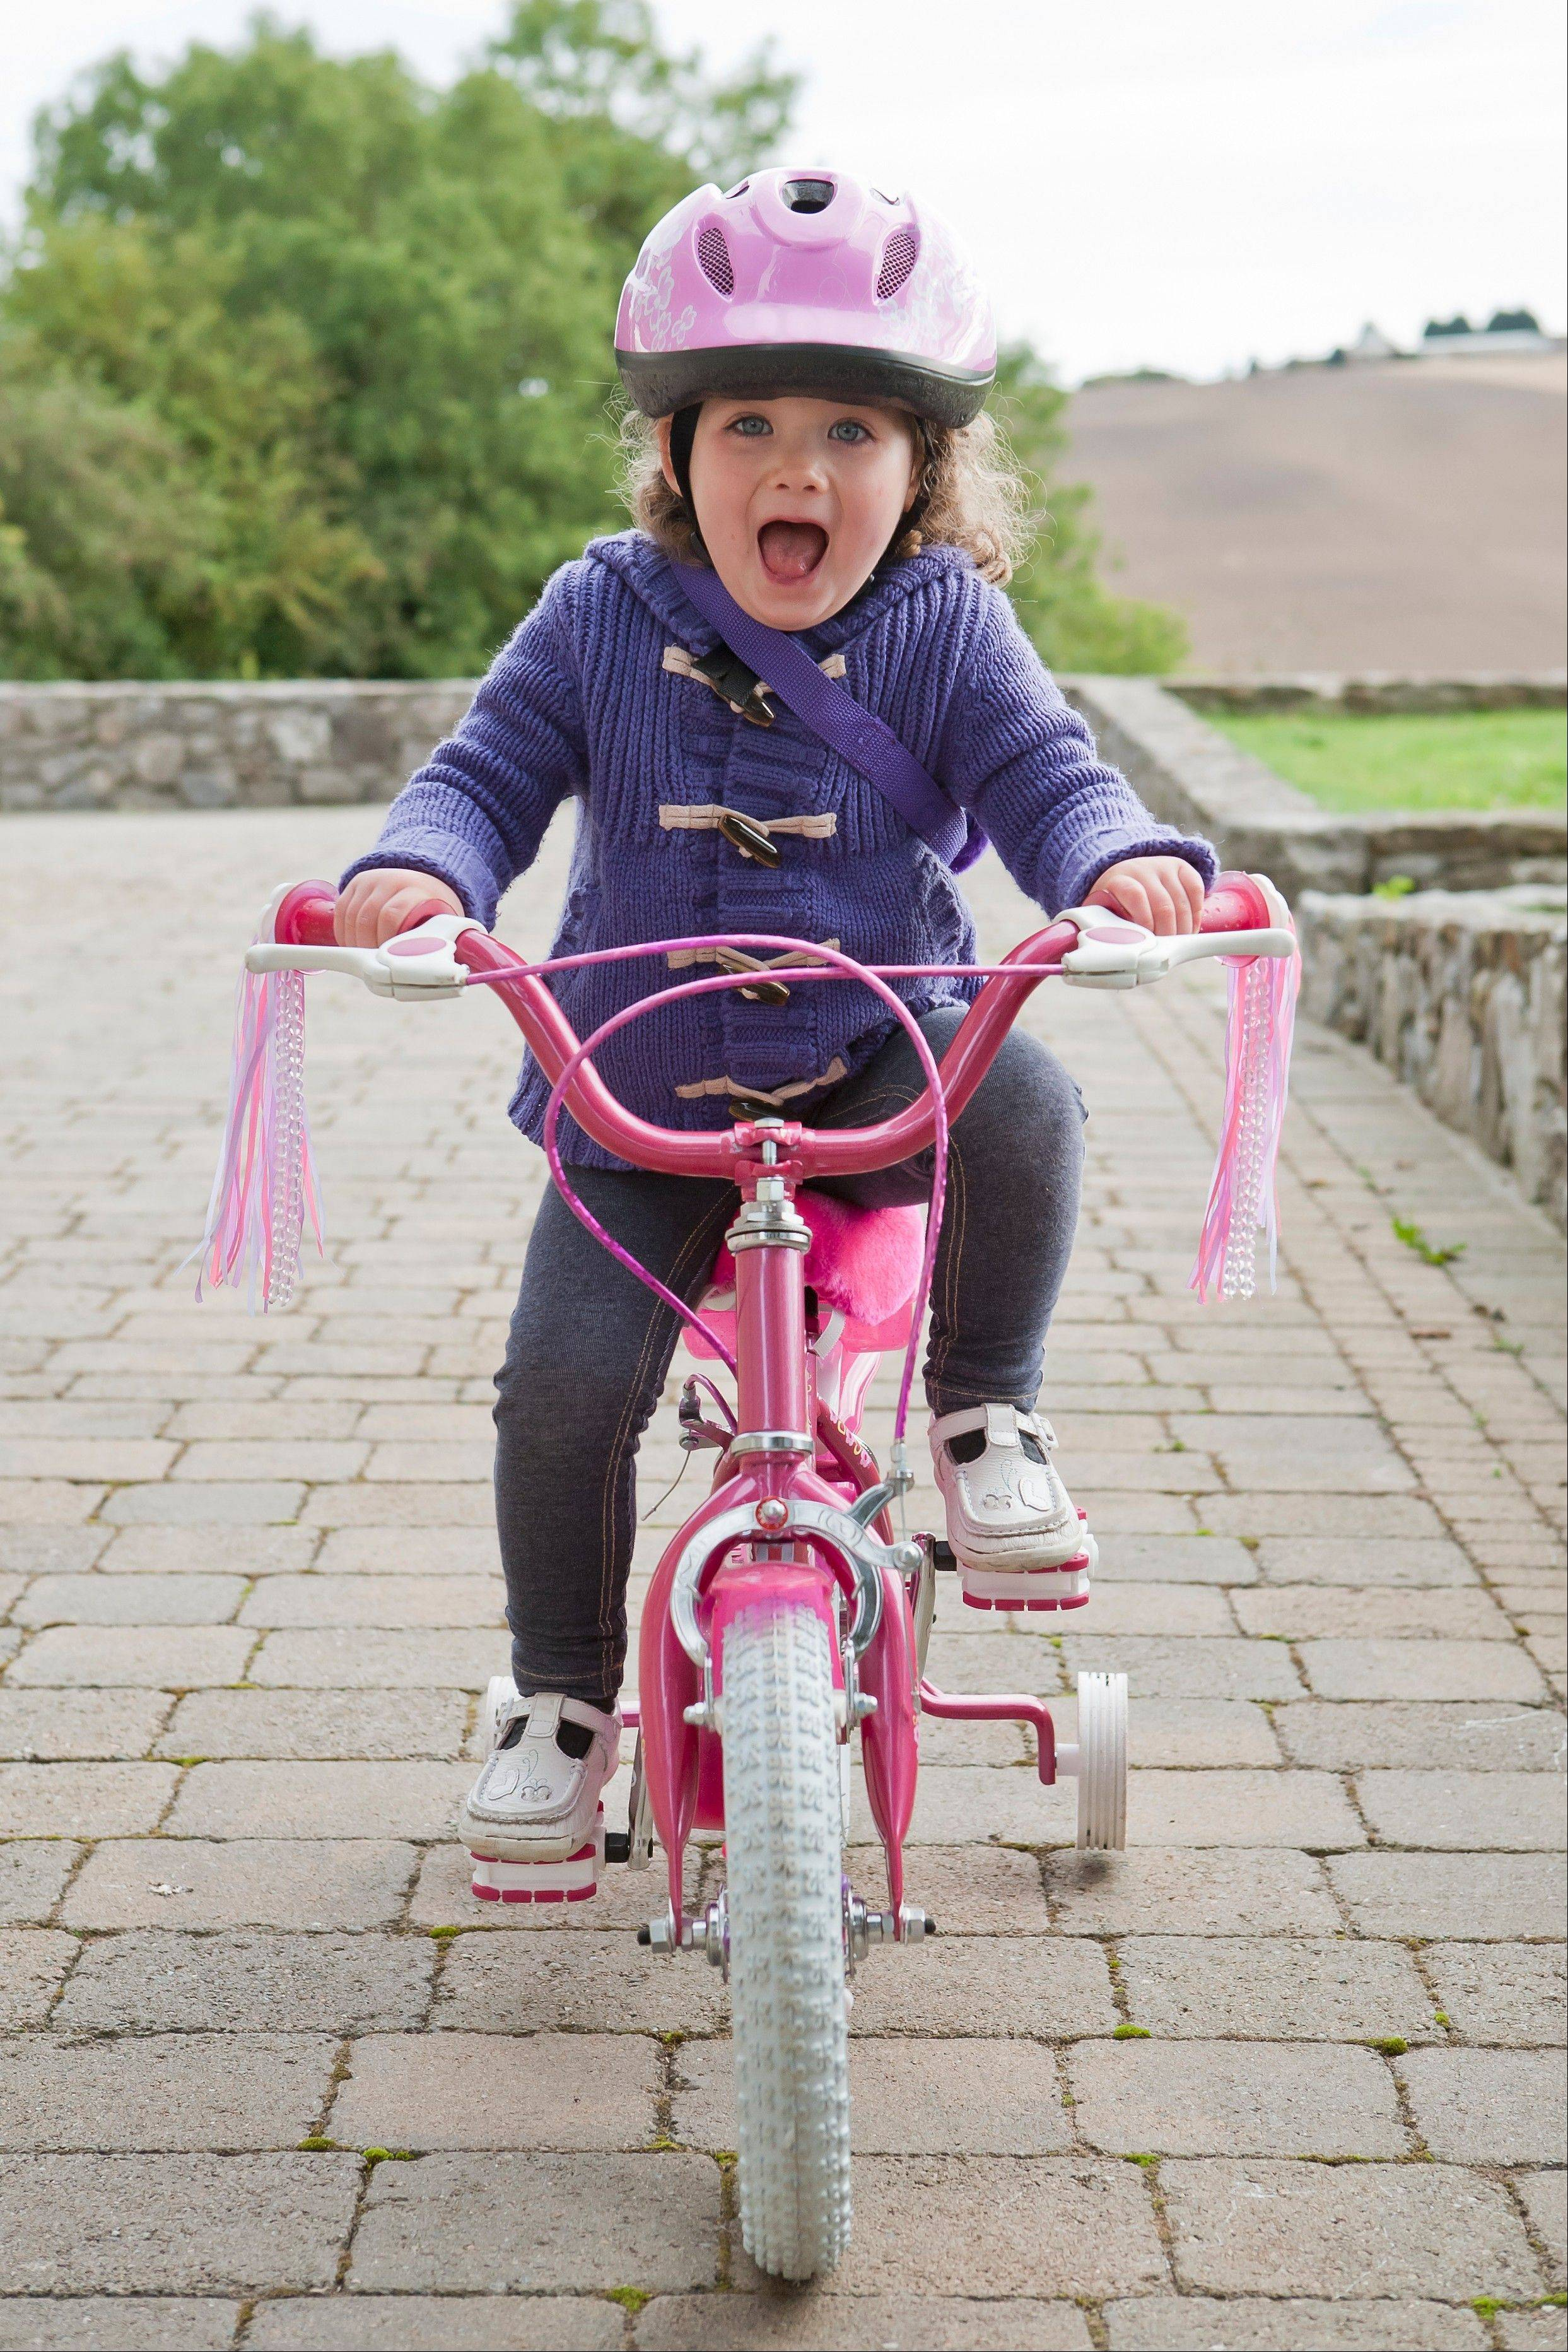 Kids can learn about bike and traffic safety at the free Bike Safety Rodeo on Sunday, May 5, at the Advocate Condell Conference Center in Libertyville.